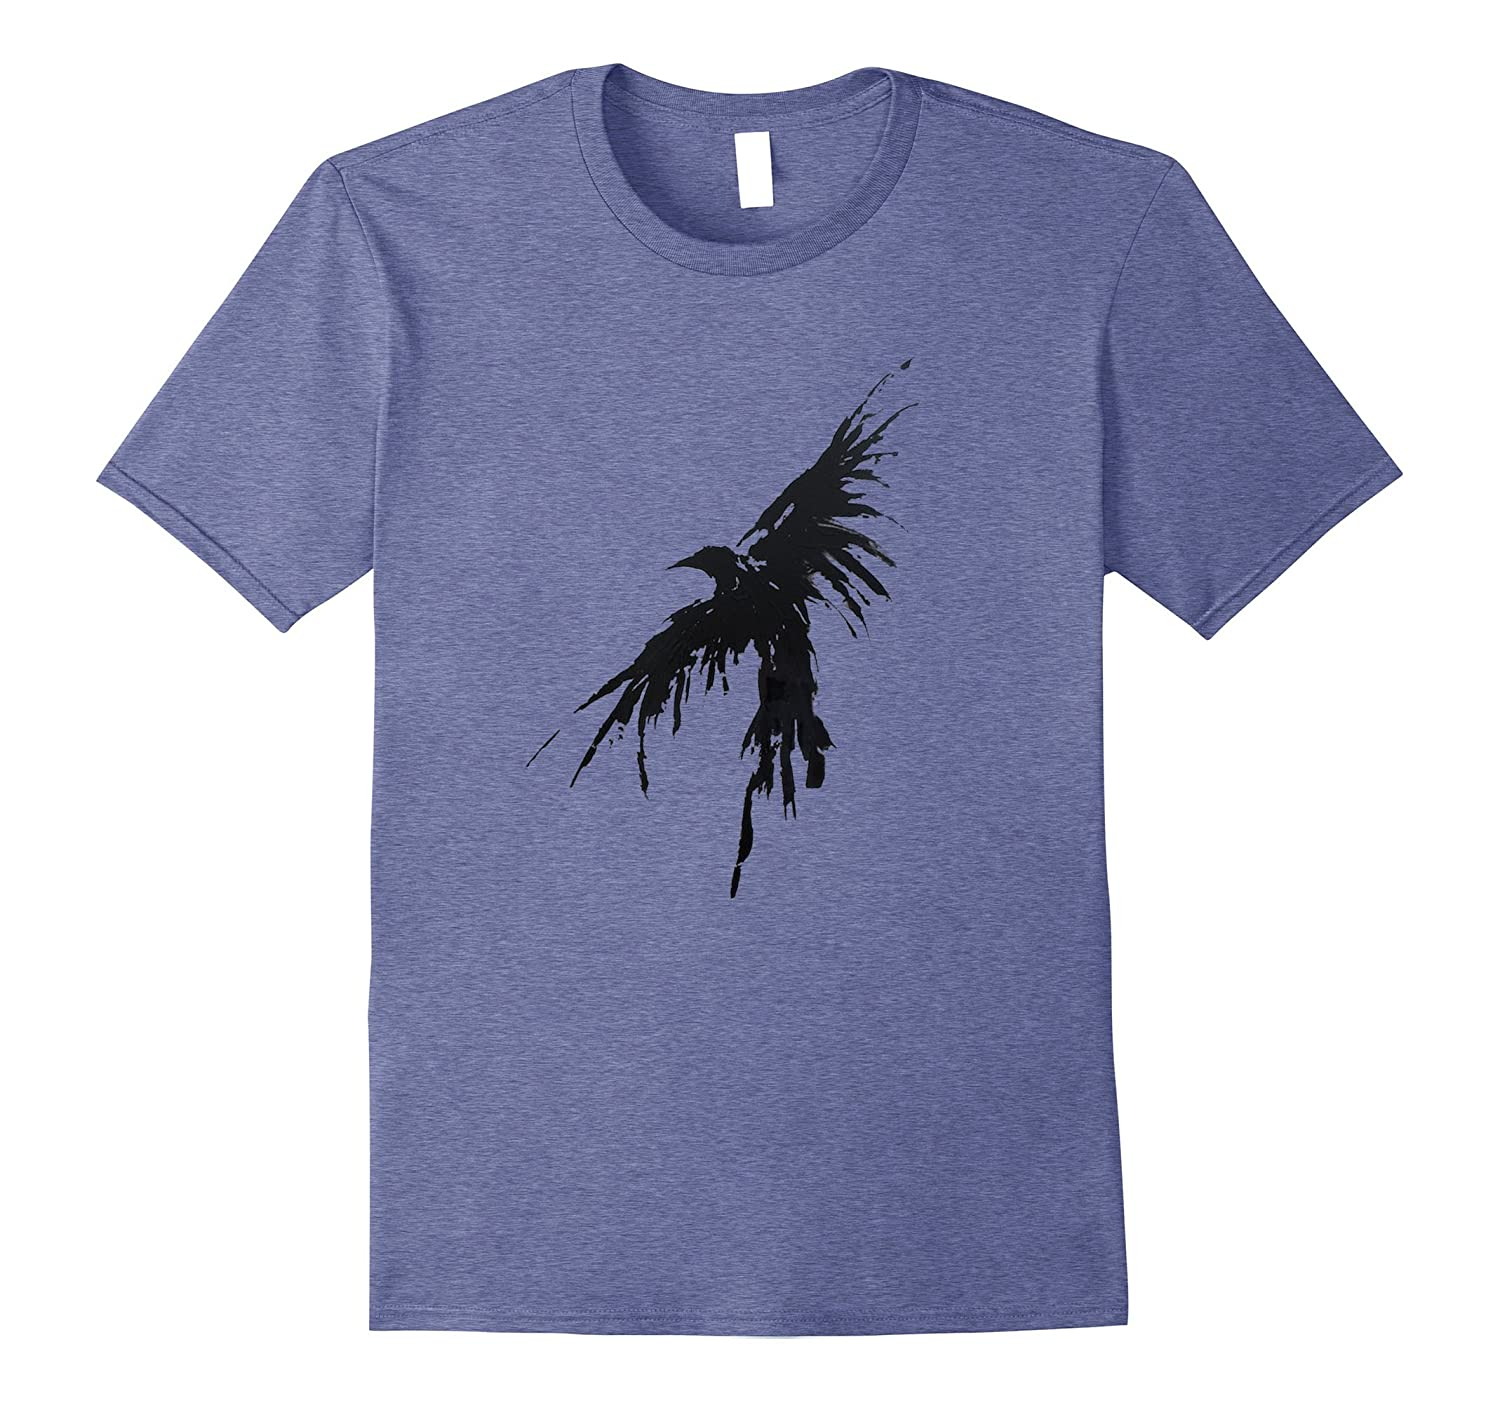 Crow Raven Shirt Distressed Flying Bird Crow Tee Shirt-AZP